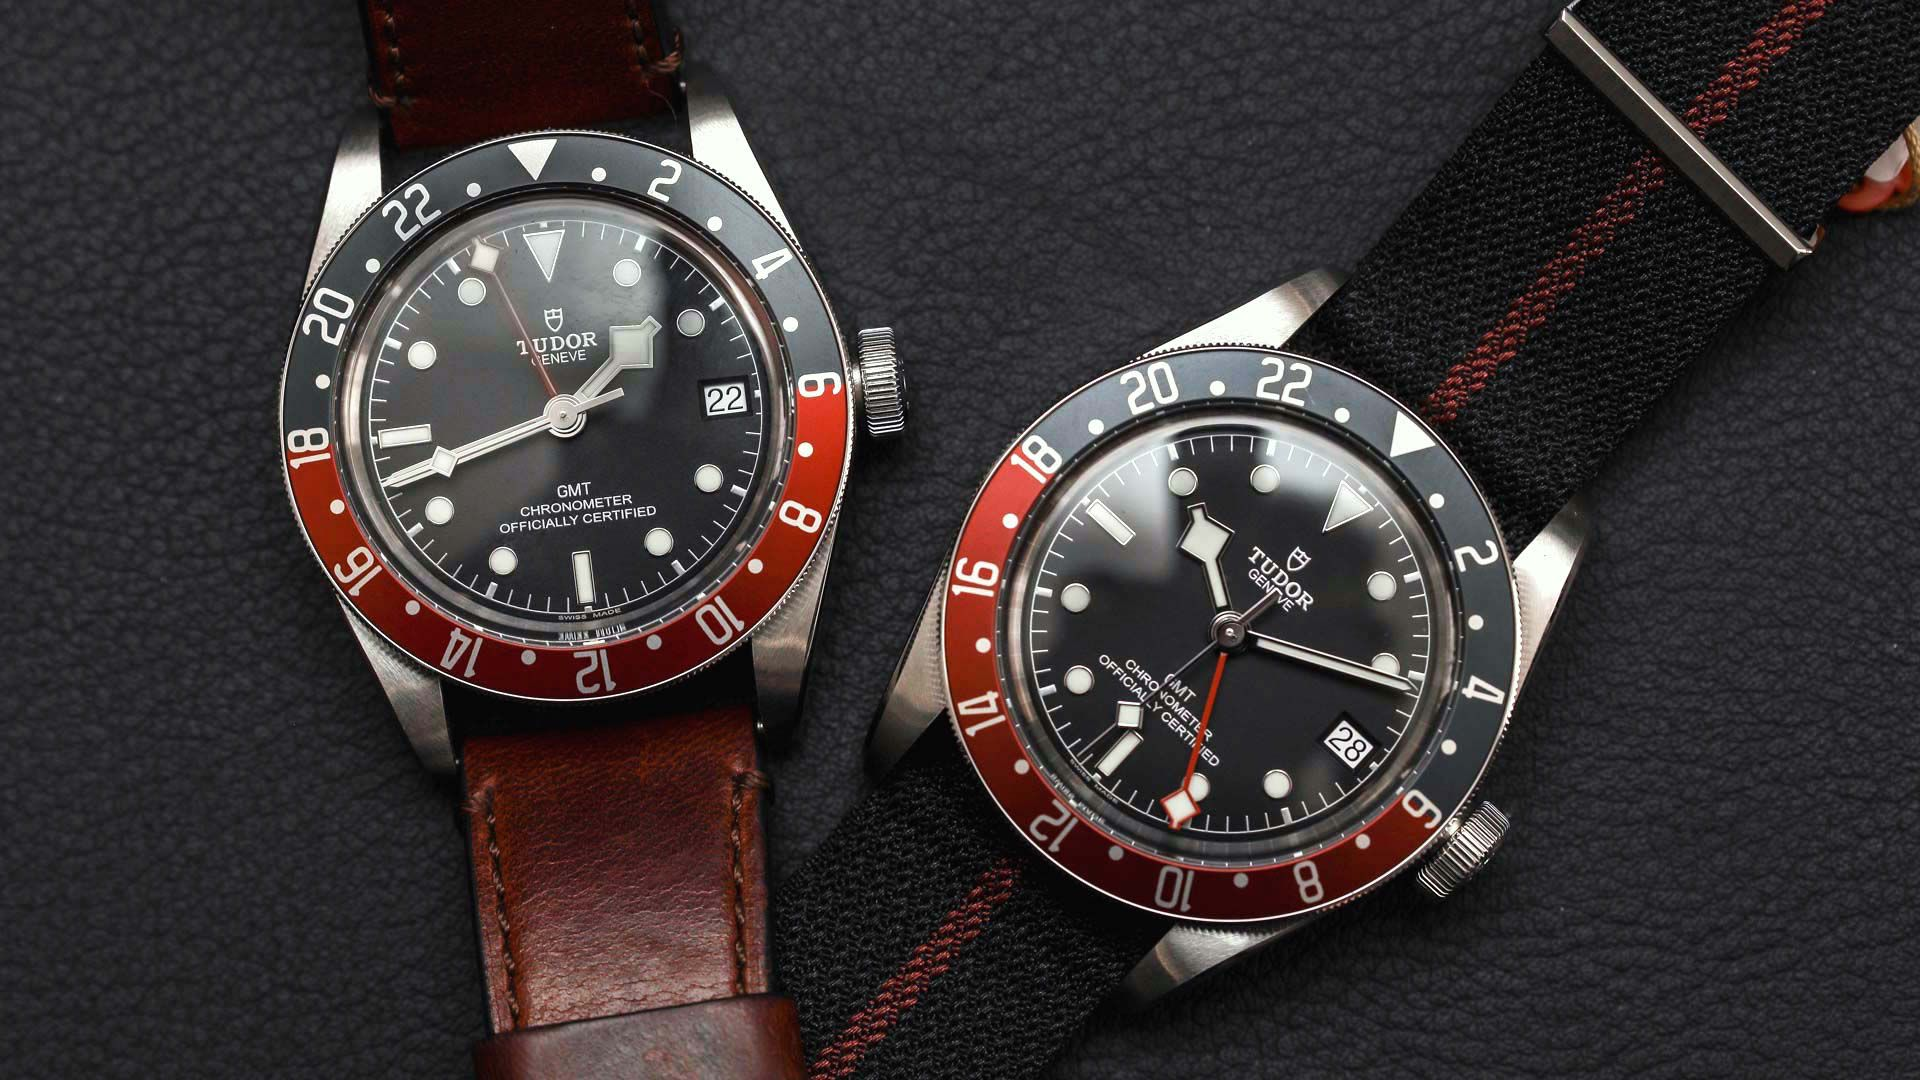 Tudor Black Bay Gmt Watch Hands On Ablogtowatch Tudor Black Bay Tudor Beautiful Watches